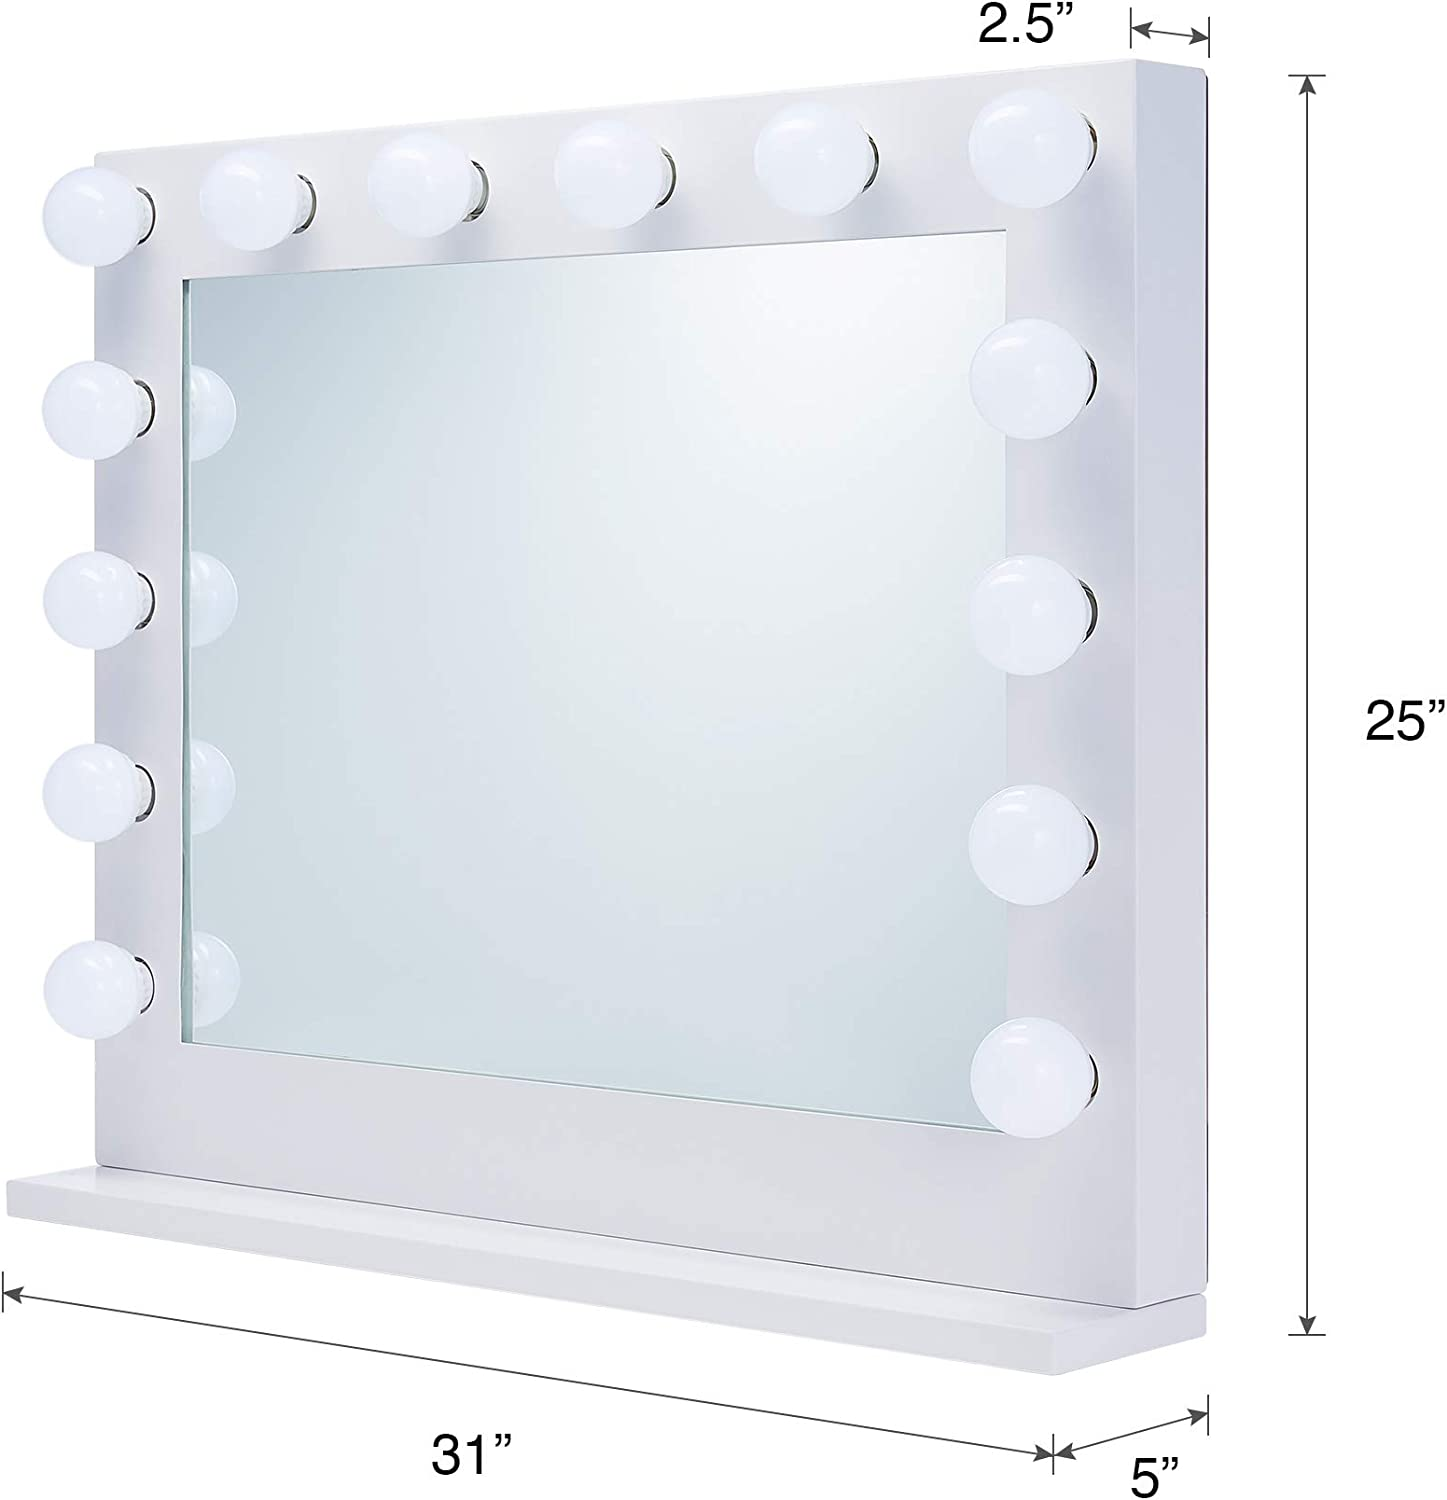 CO-Z Hollywood Makeup Mirror with Lights Dimmable Wall Mounted or Tabletop White Hollywood Vanity Mirror with 15 LED Bulbs Large Lighted Vanity Mirror for Dressing Room Bedroom Studio 30.7 x 25.